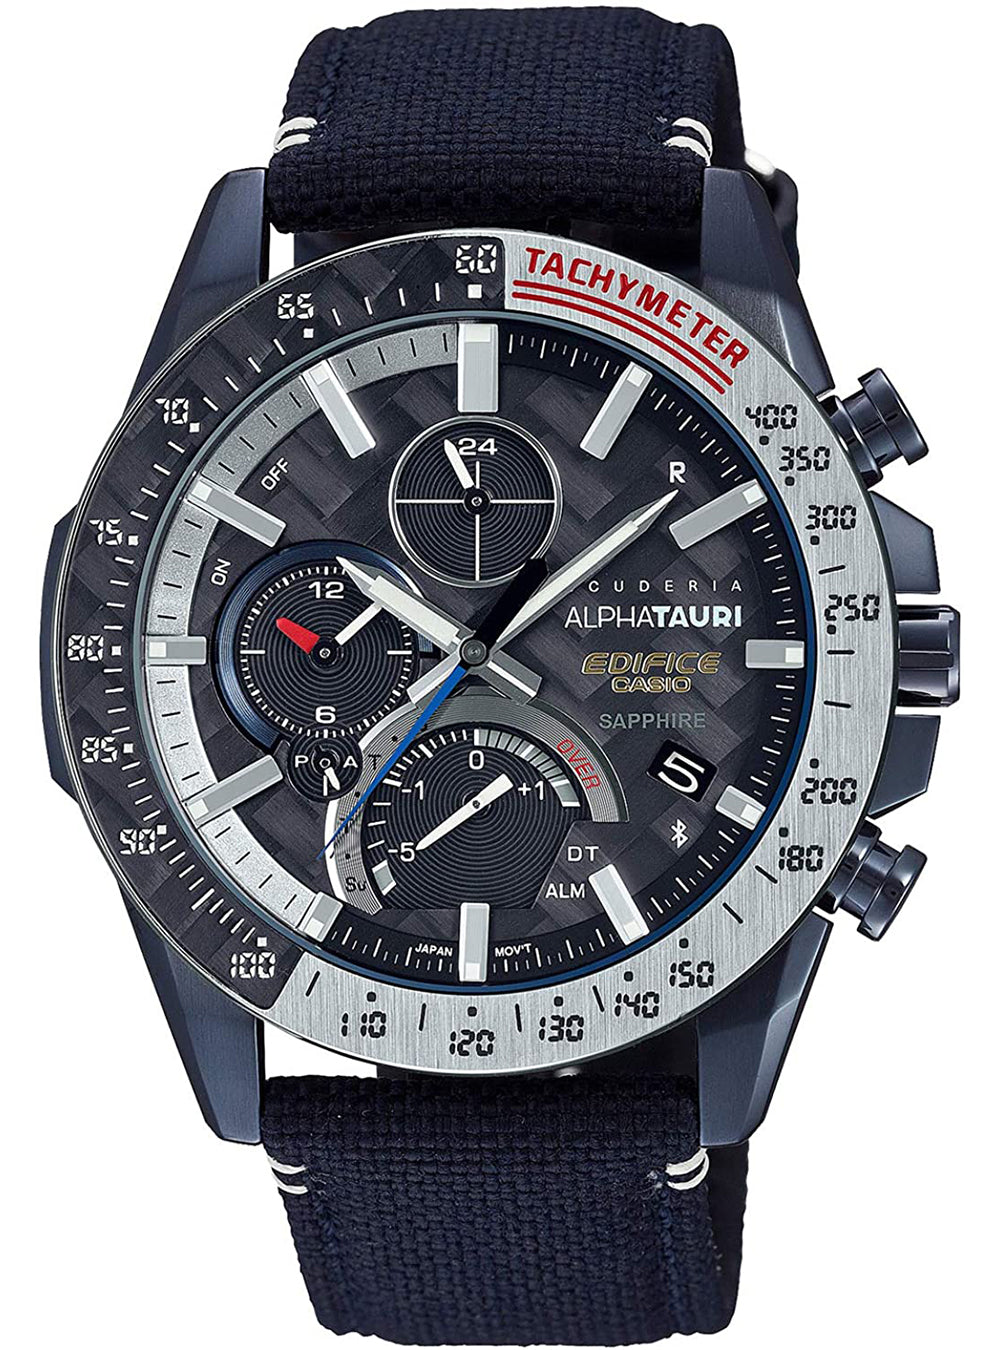 CASIO EDIFICE SCUDERIA ALPHATAURI LIMITED EDITION EQB-1000AT-1AJR JDM